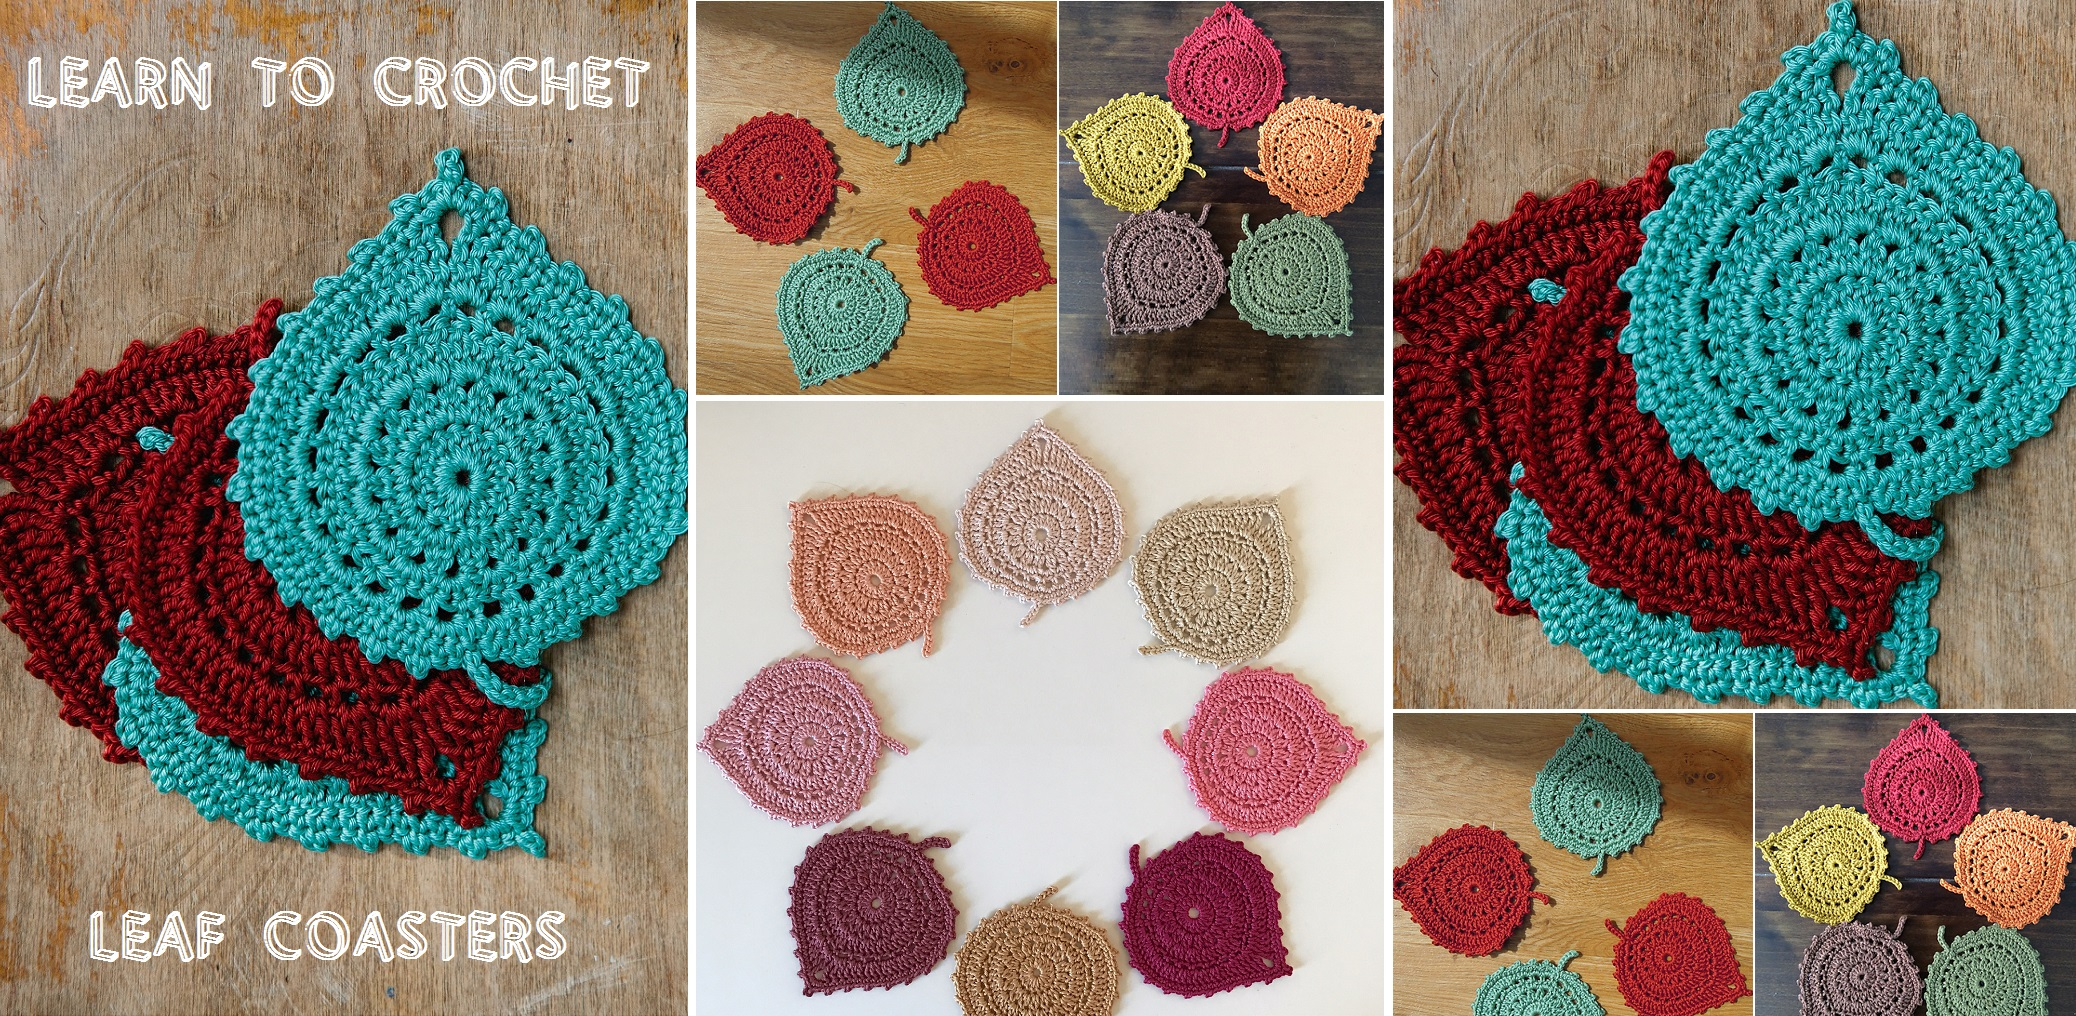 Crochet Leaf Coaster Design Peak